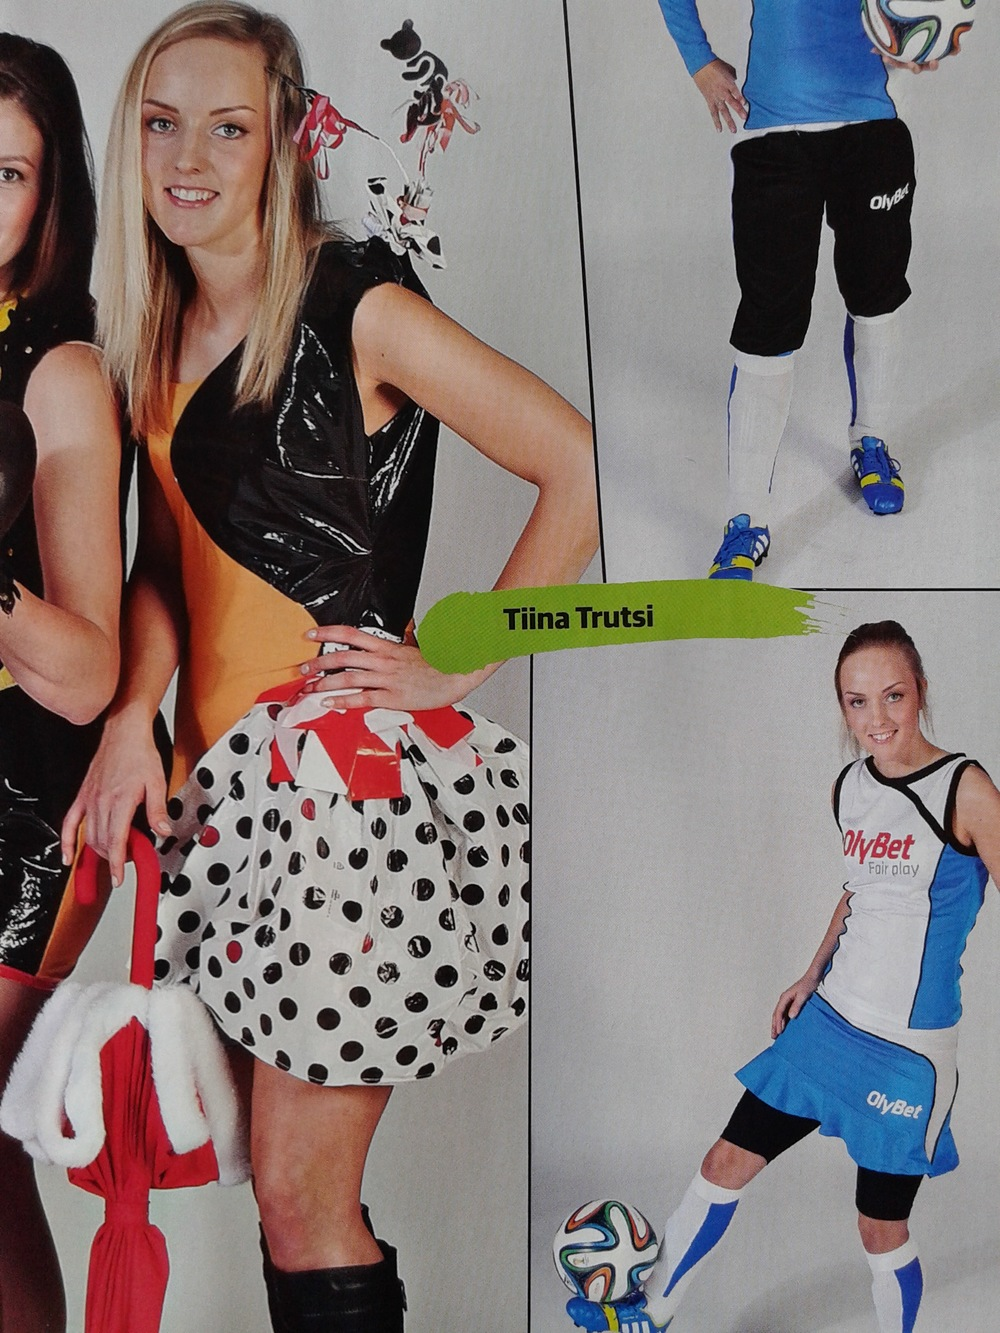 Tiina Trutsi modelling for the centrefold poster - click to enlarge